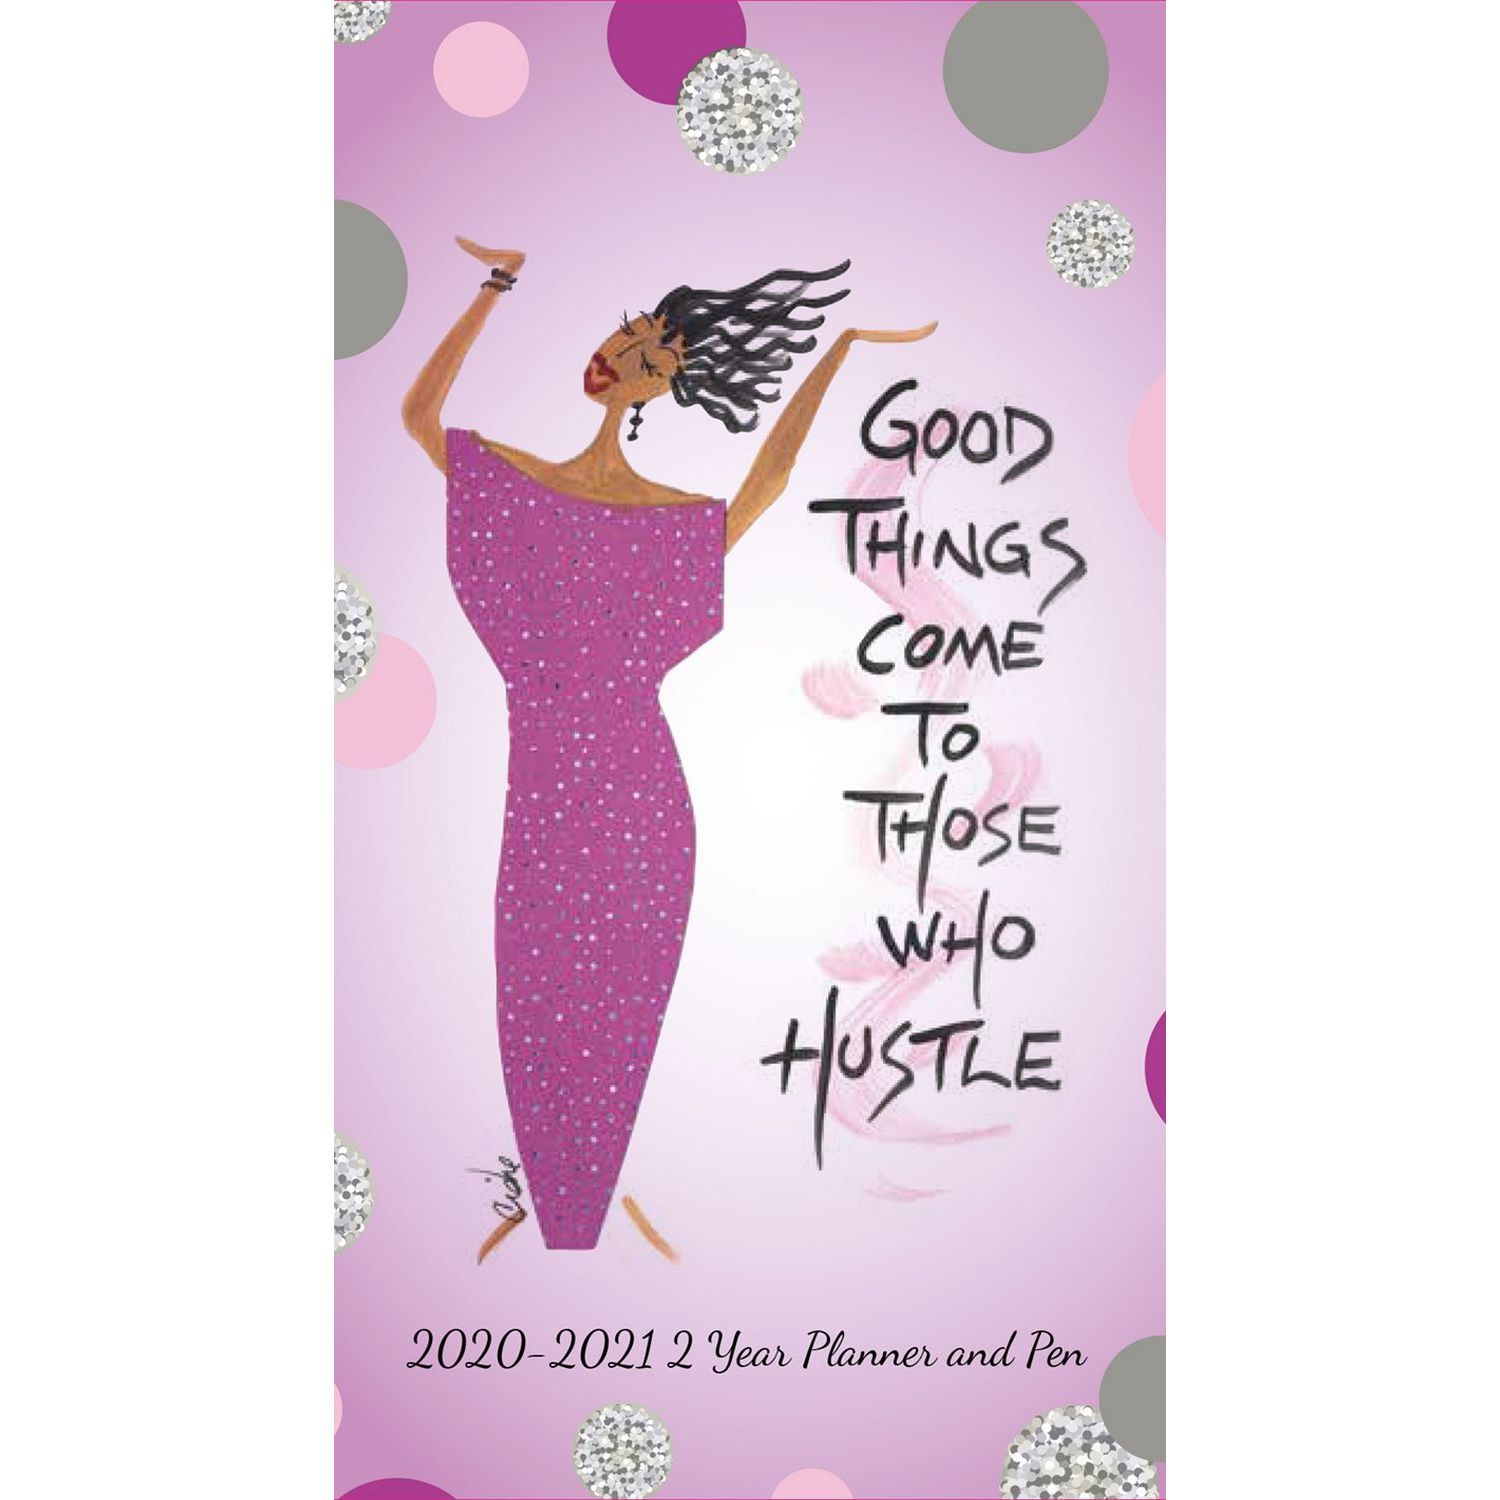 Those Who Hustle: 2020-2021 Two Year African American Checkbook Planner by Cidne Wallace